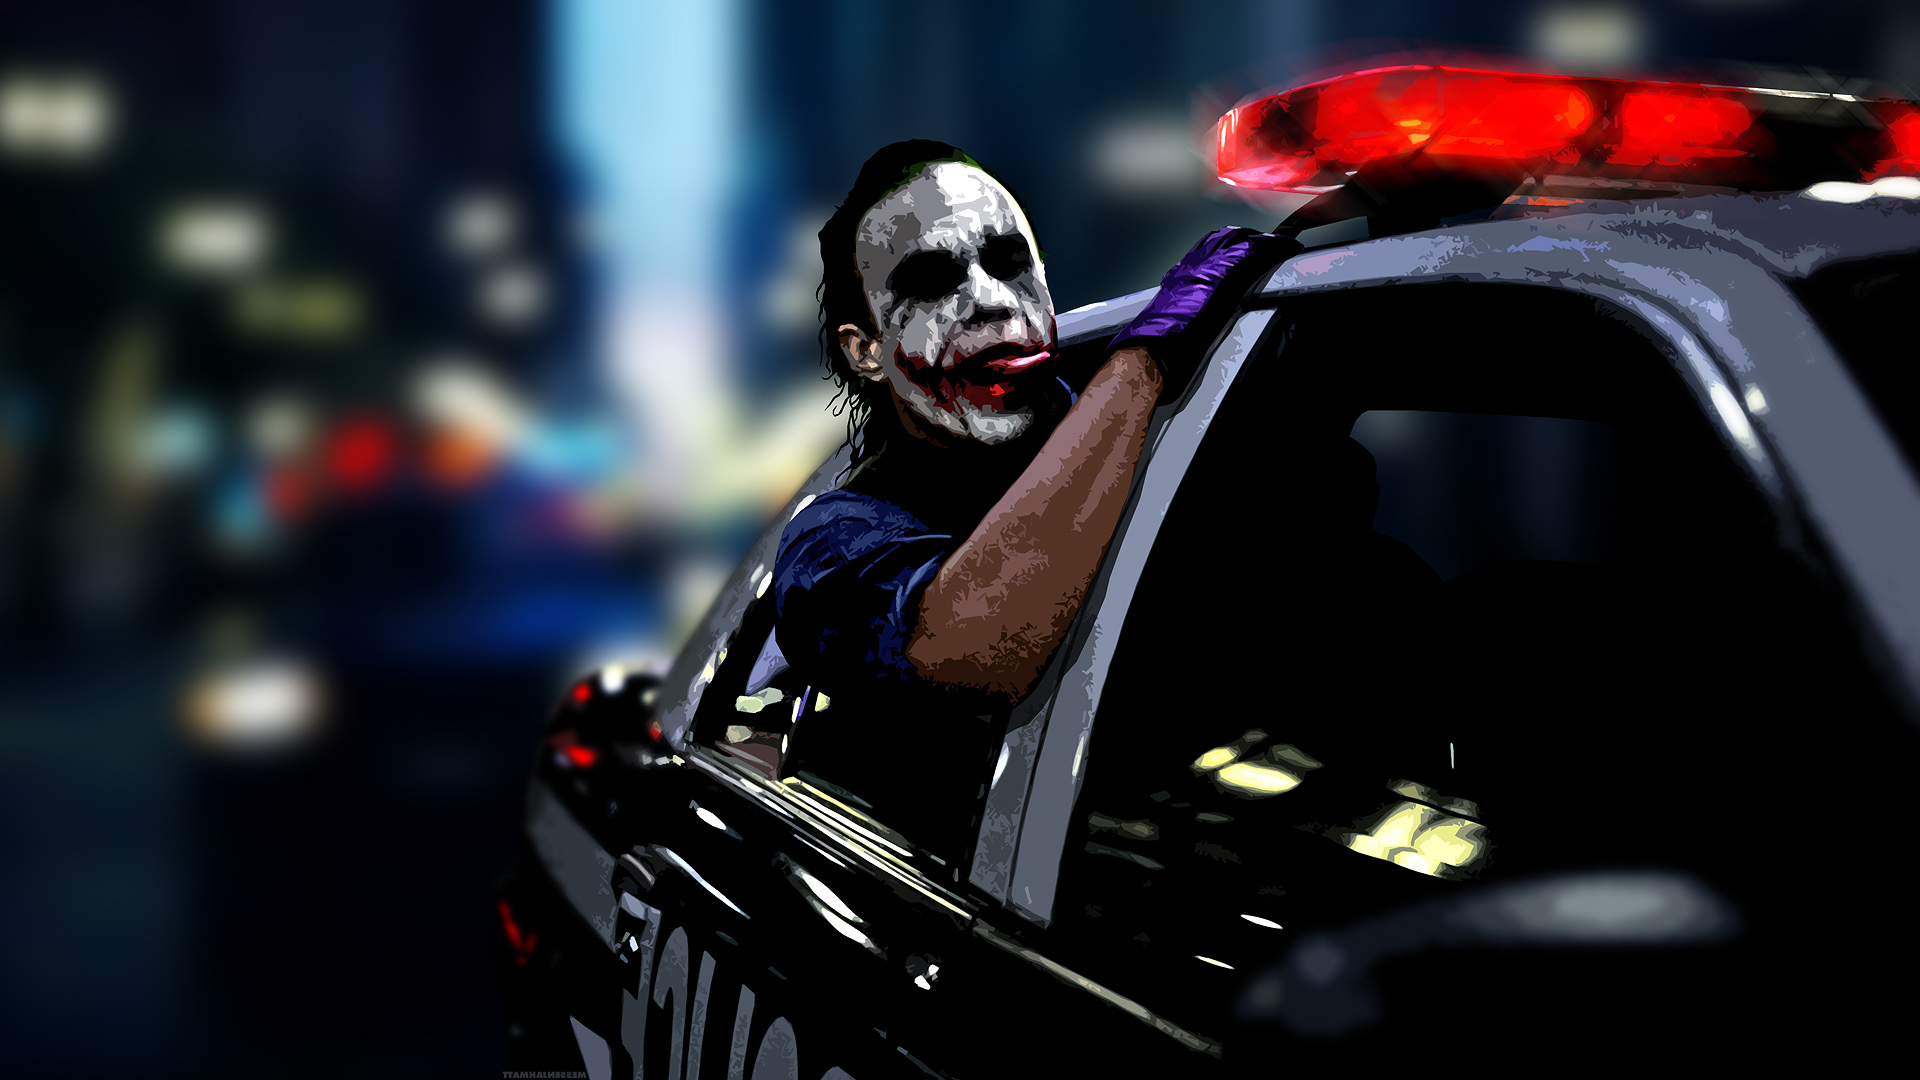 Awesome Joker Wallpaper   Full HD Pictures